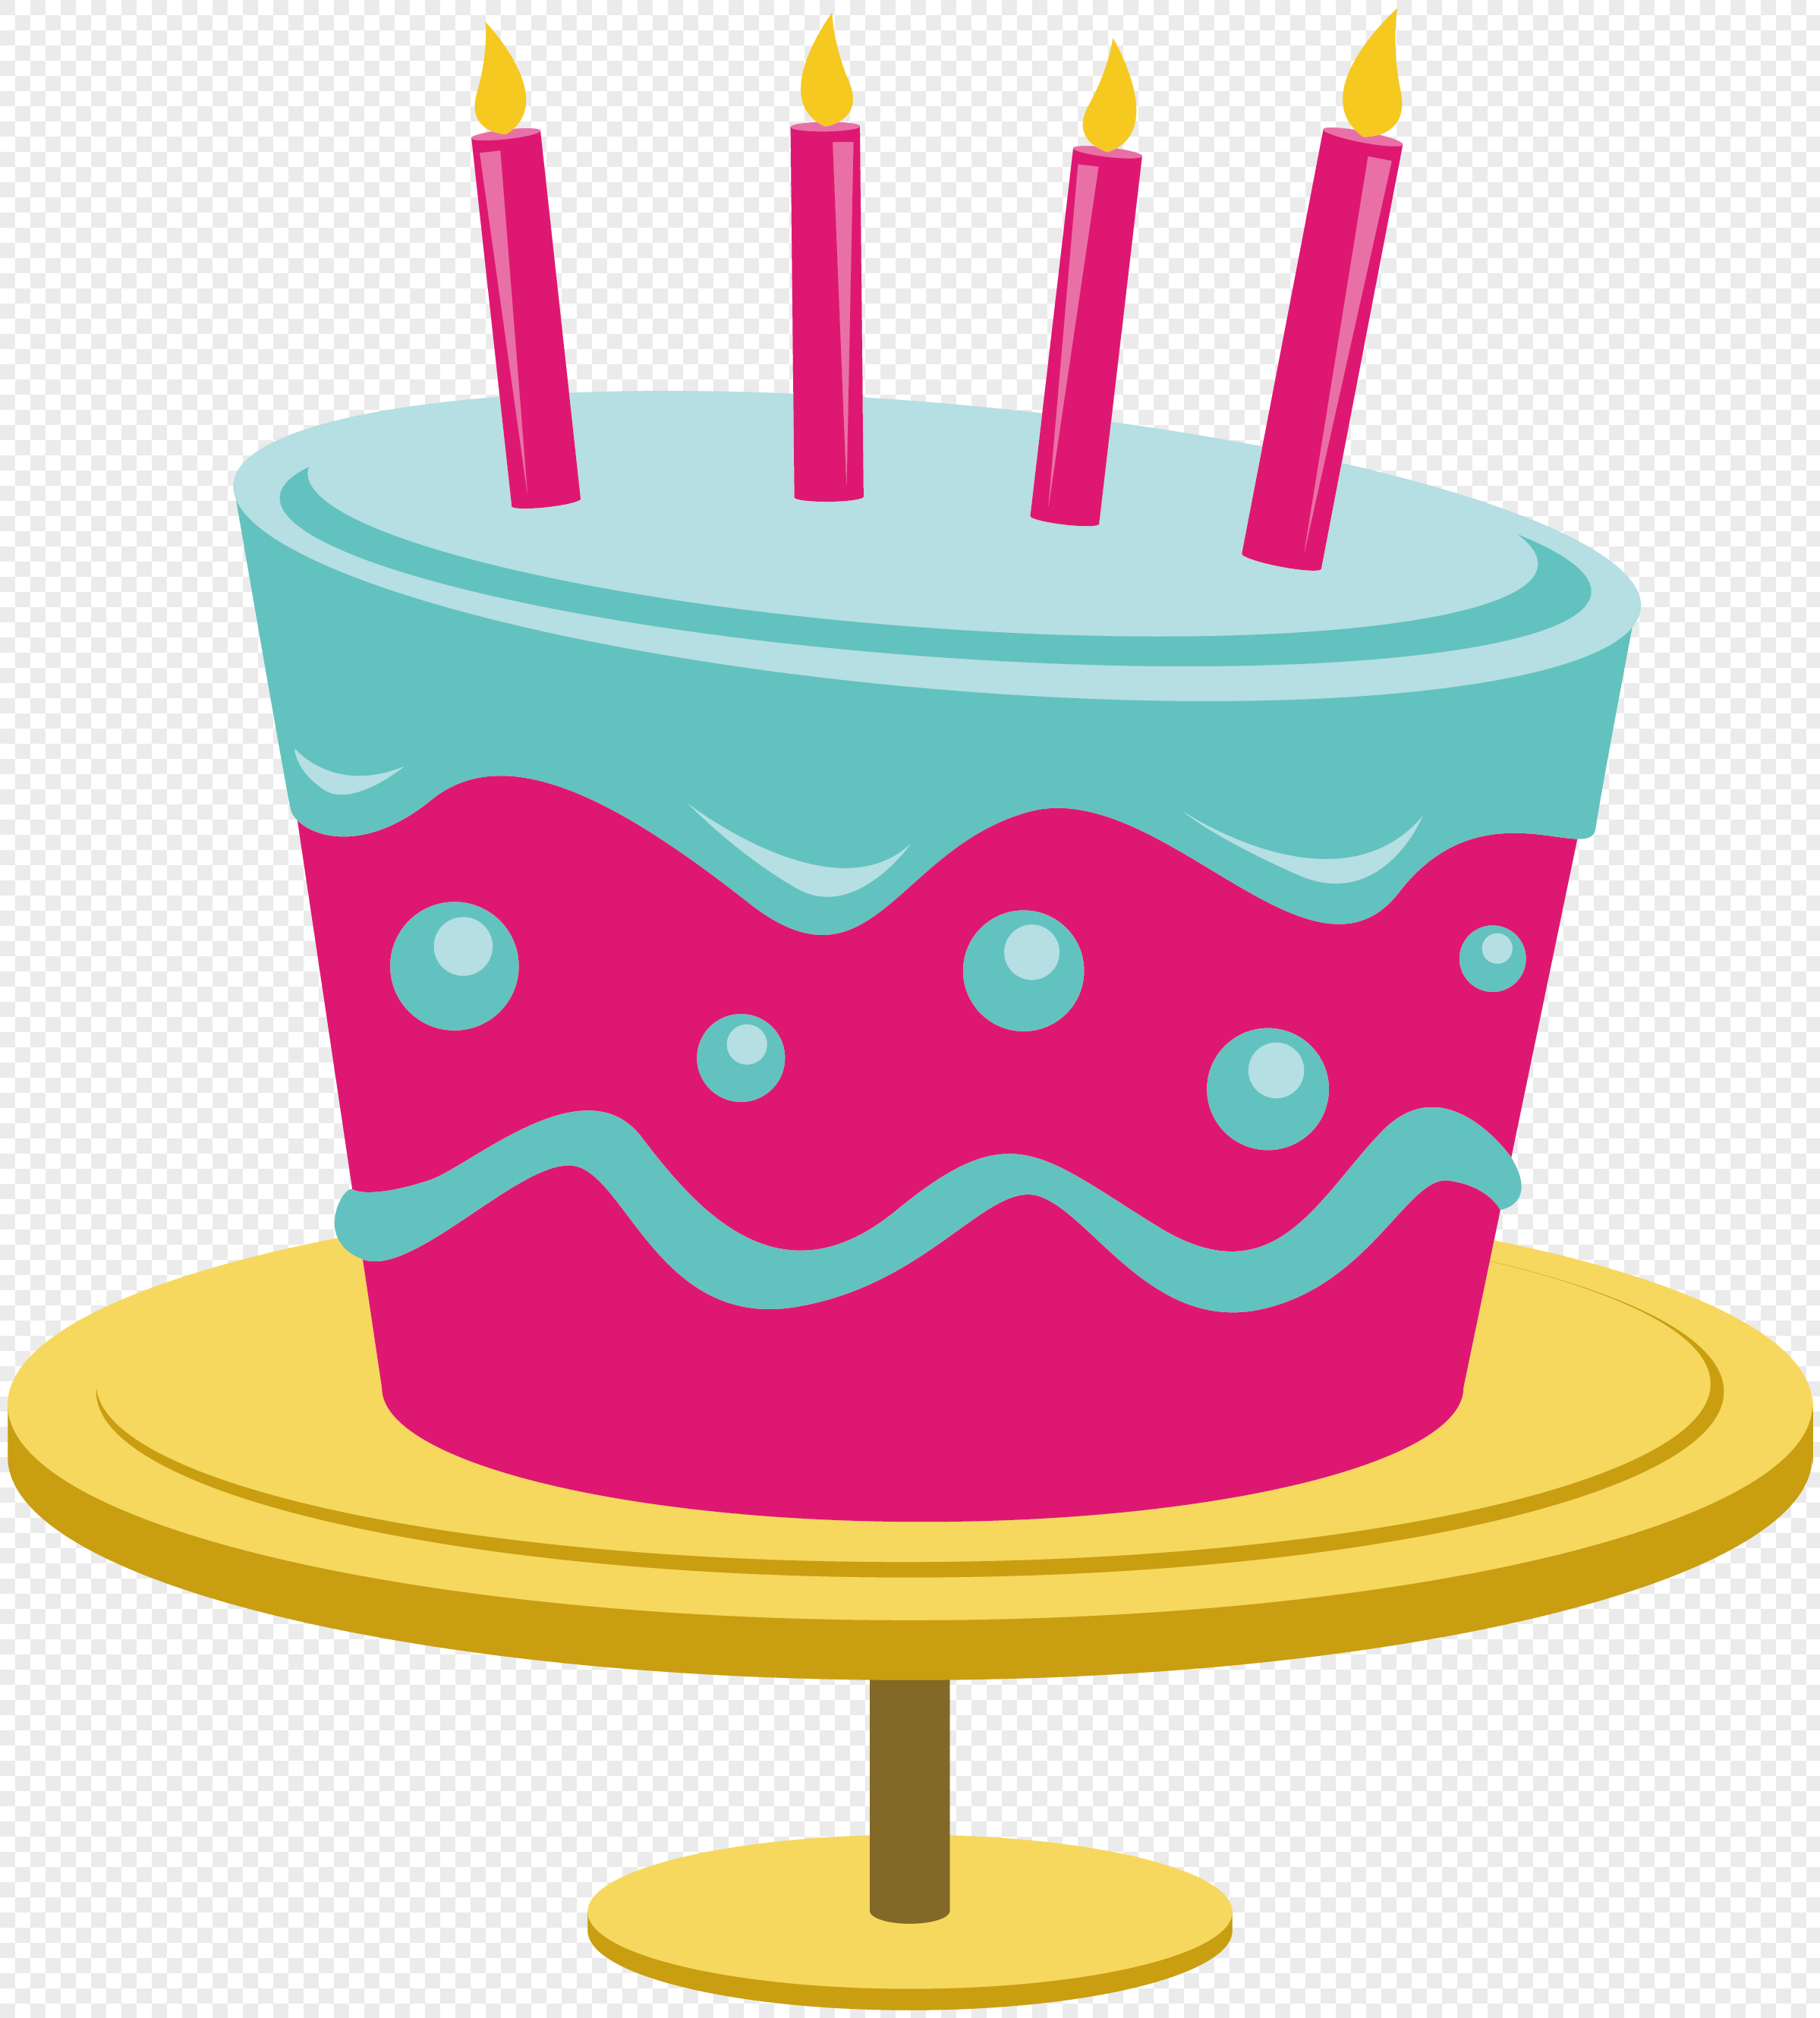 Cartoon Birthday Cake Vector Material Png Image_picture